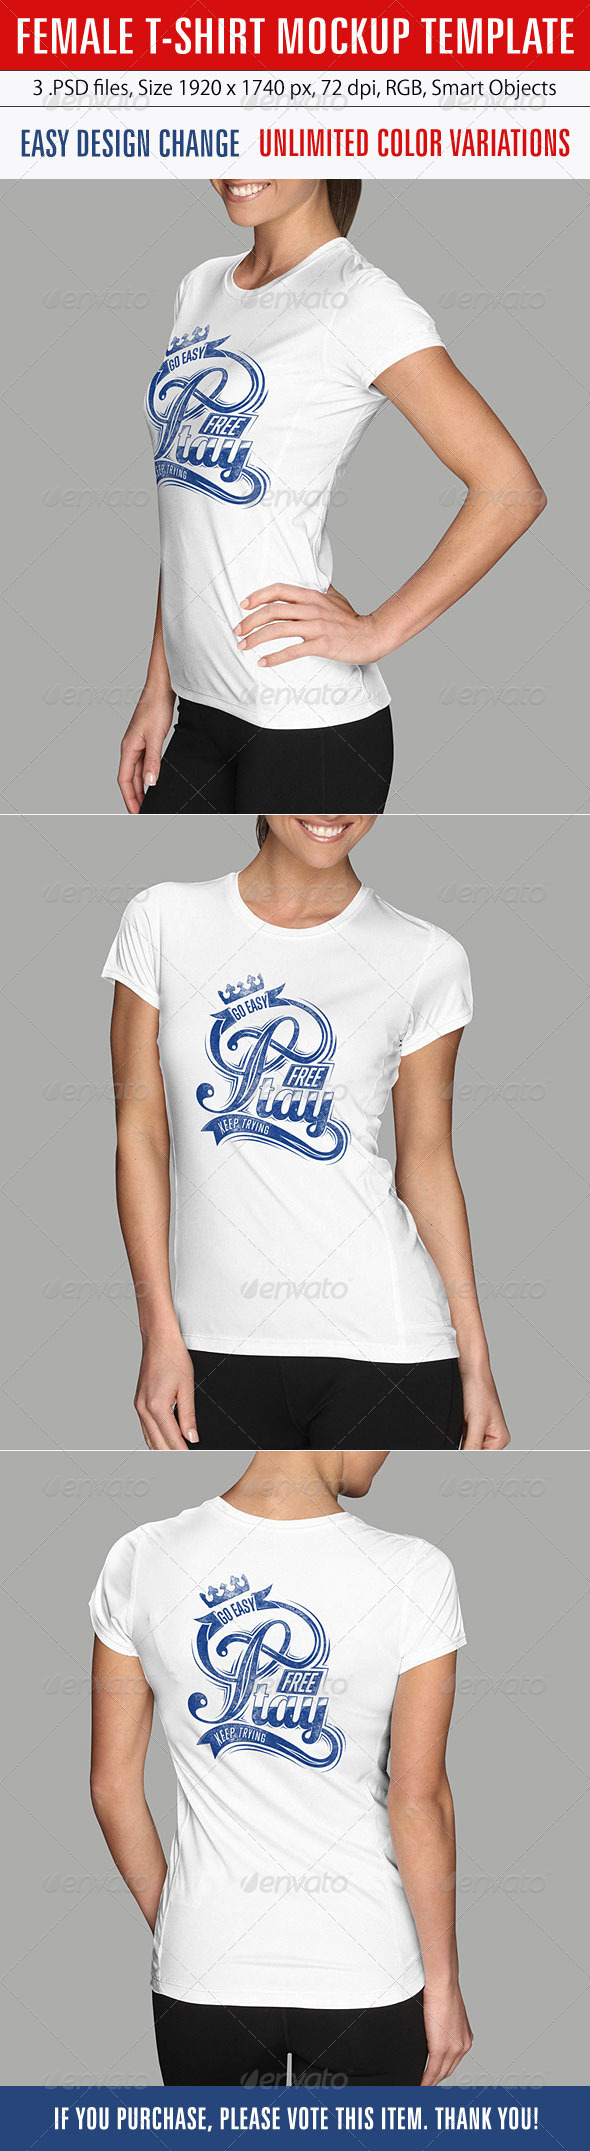 Download Female T Shirt Mockup Template Shirt Mockup Tshirt Mockup Mockup Template